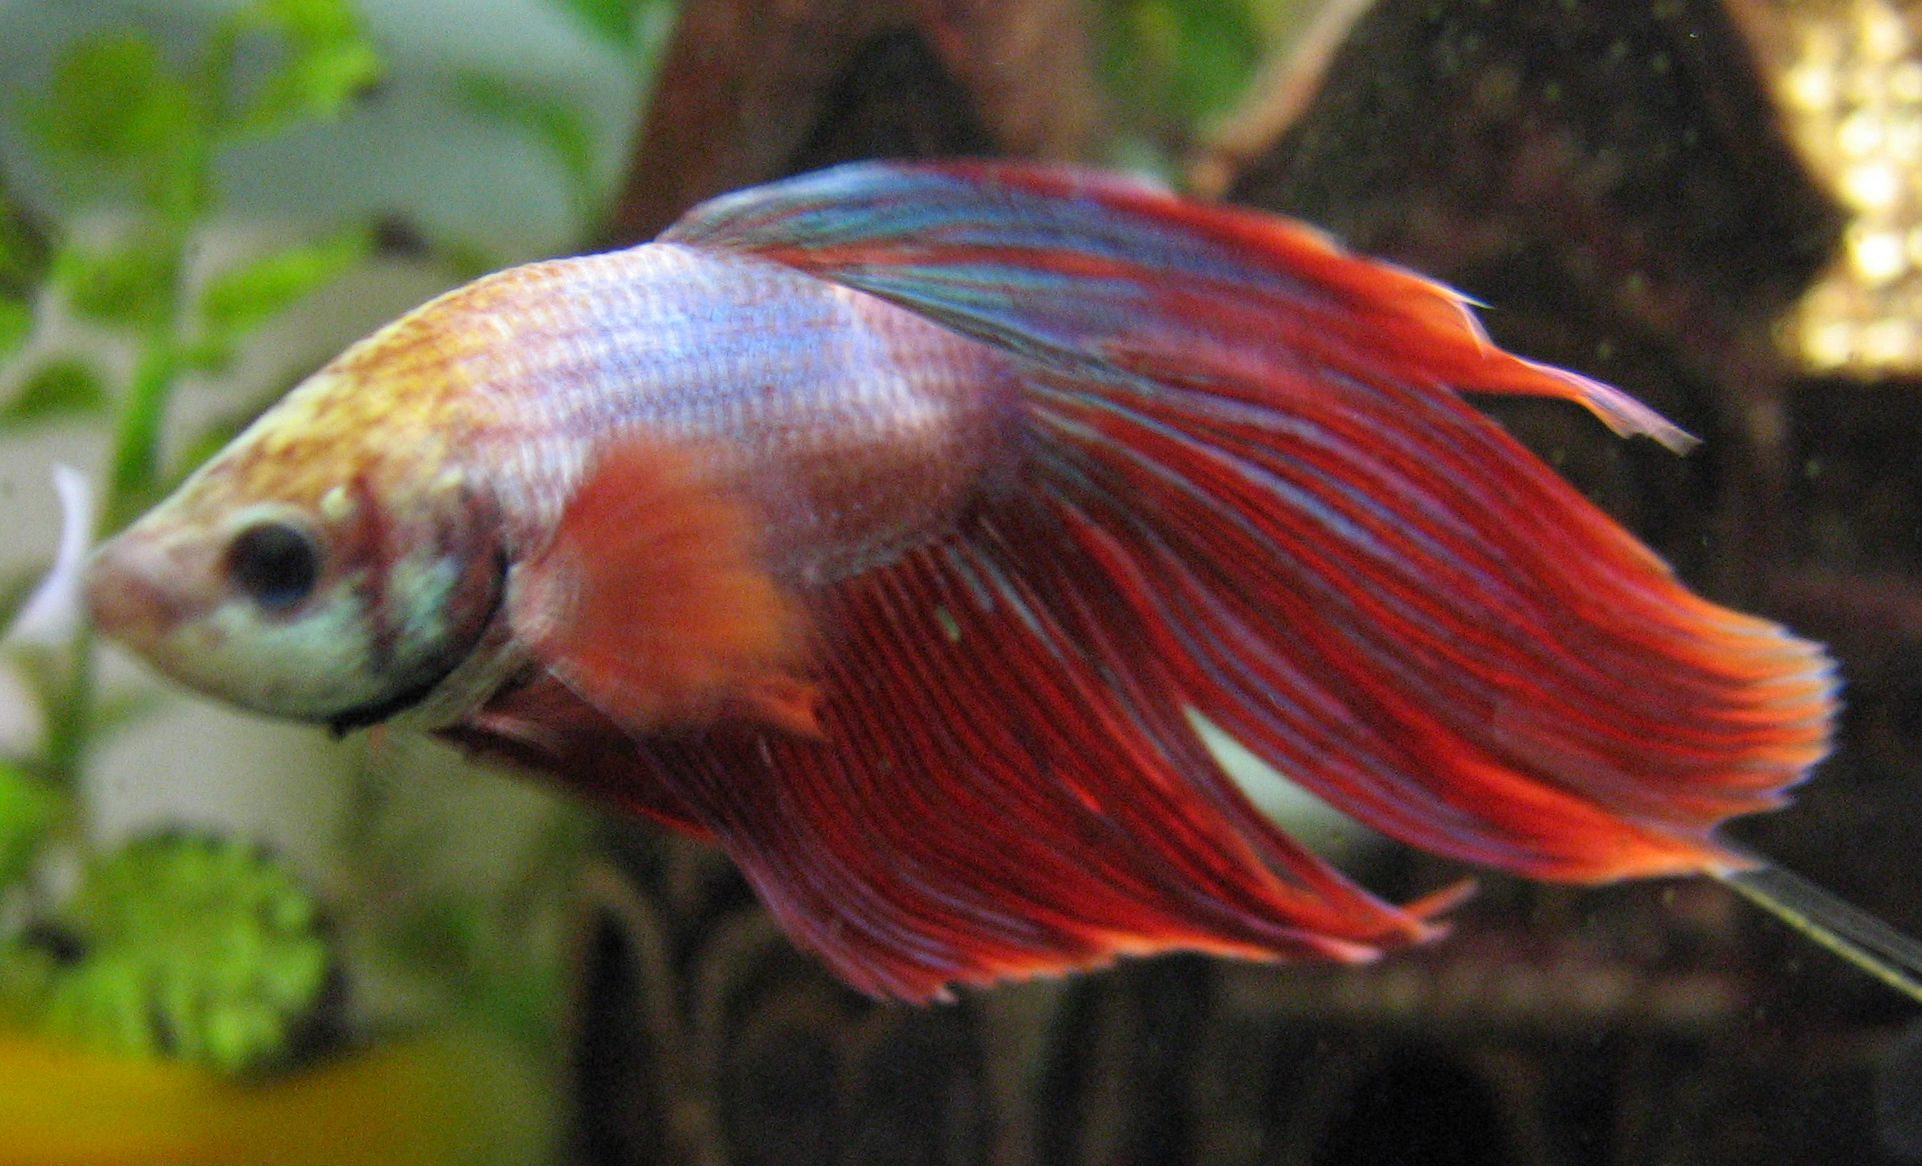 Anabantoidei - Wikipedia, the free encyclopedia | Bettas and other ...